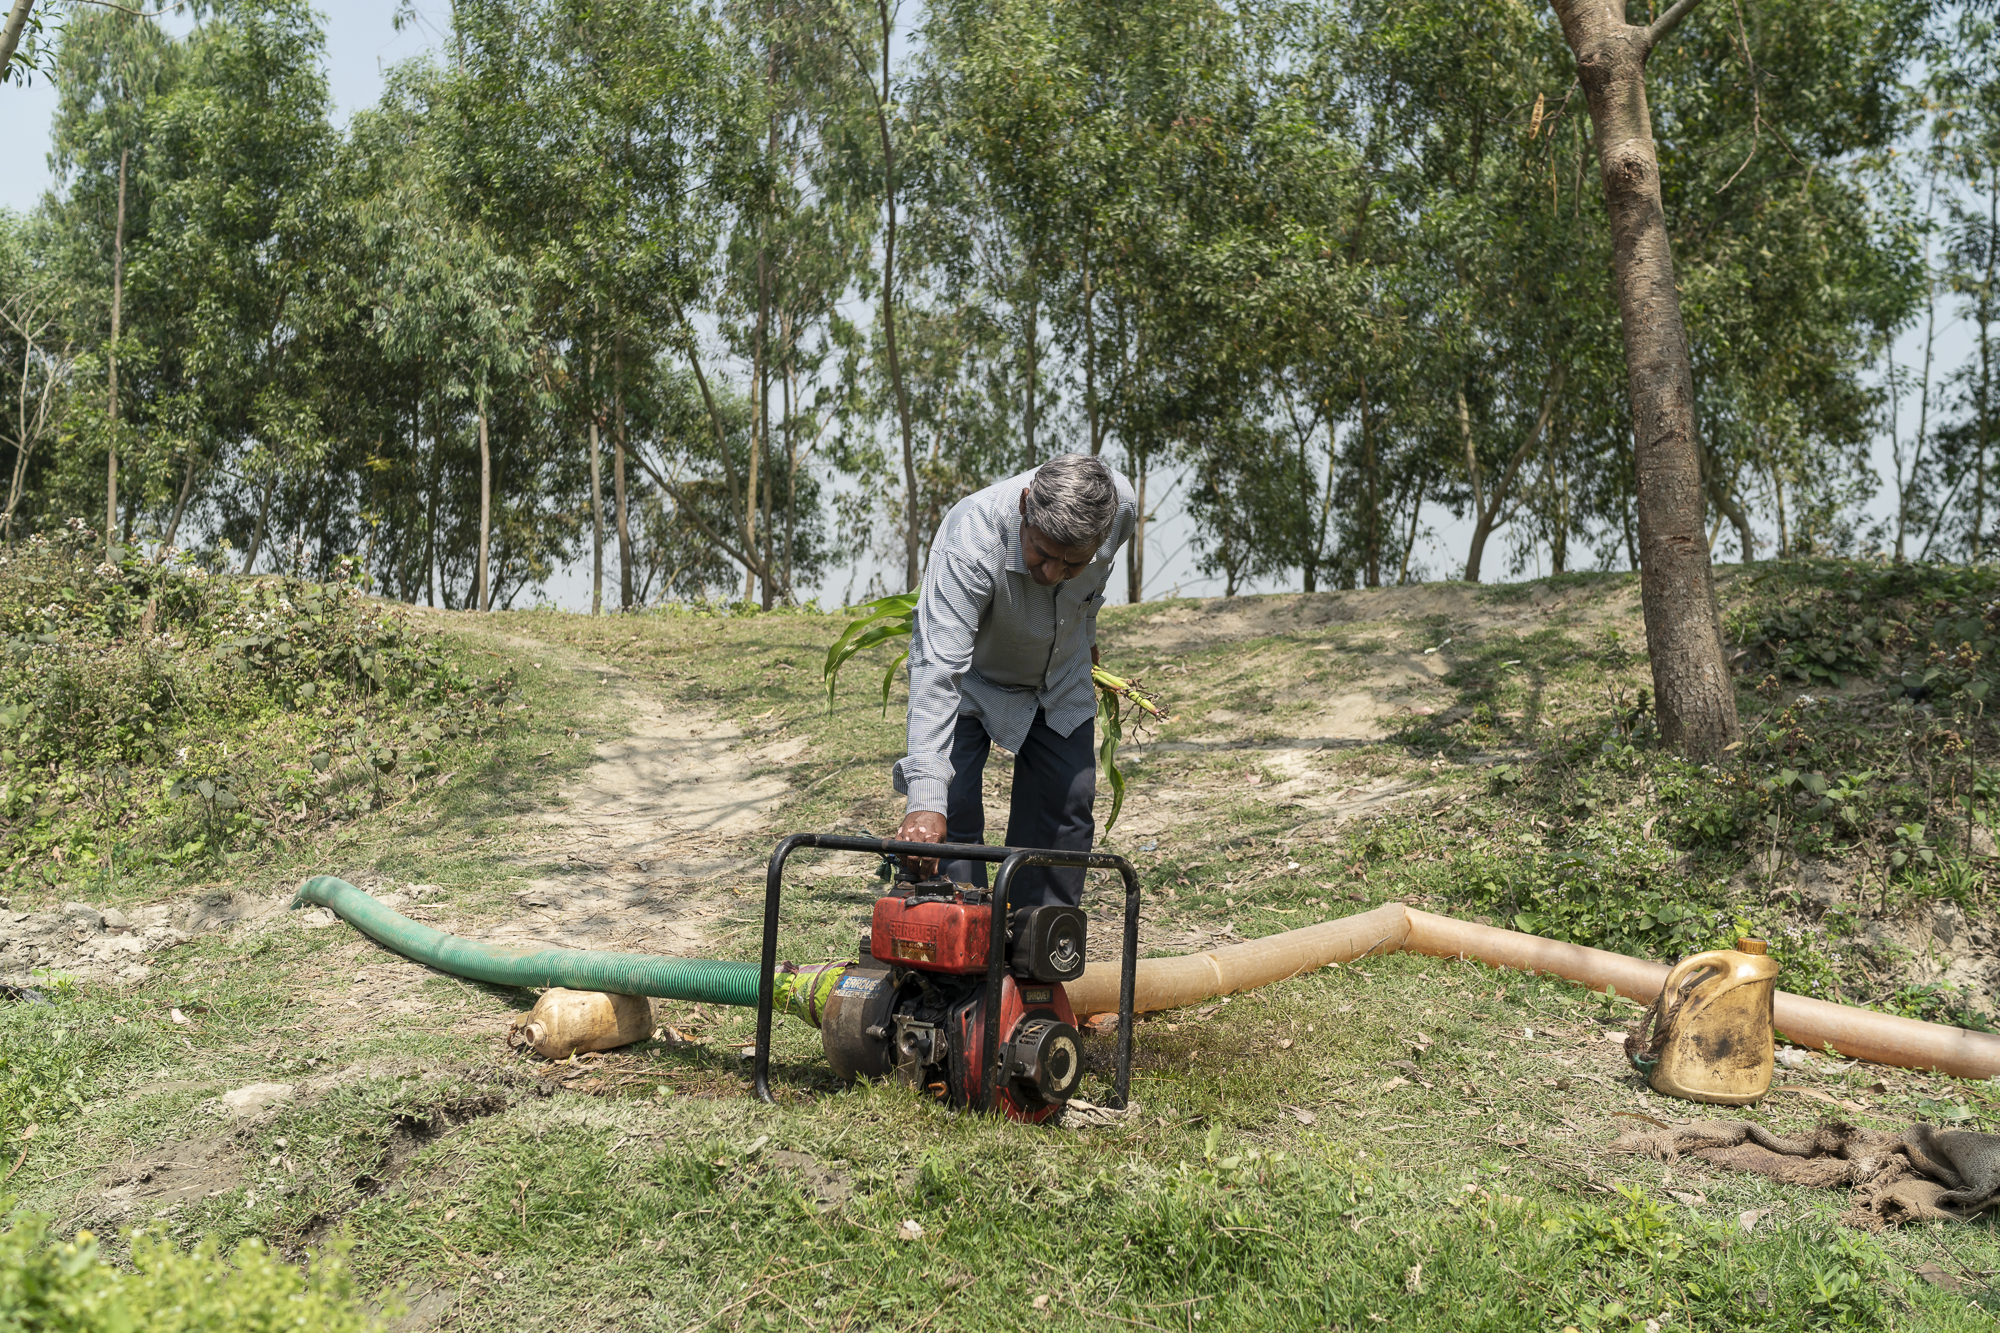 It is currently so expensive to pump groundwater in Bihar that farmers under-irrigate, despite an abundance of water resources. Electrifying agriculture would reduce costs by 80% even if farmers paid full price.